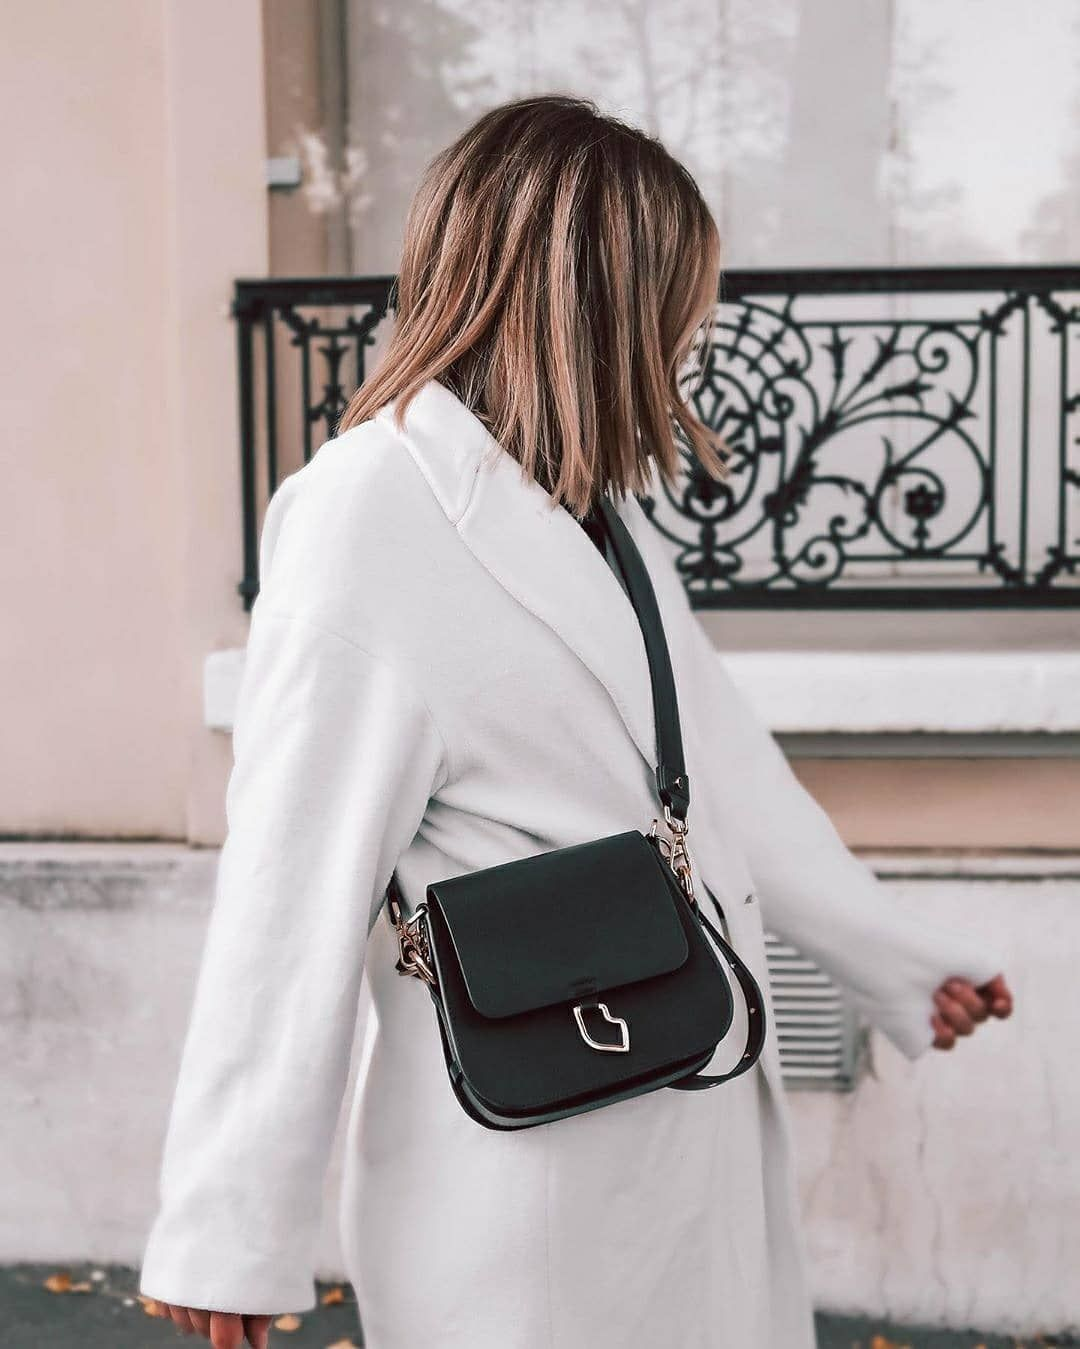 Bons Baisers De Paname On Instagram Life Is Good When You Have A New Bag Sac French Kiss Small Shoulder Noir Somaiwenn New Bag Bags French Kiss